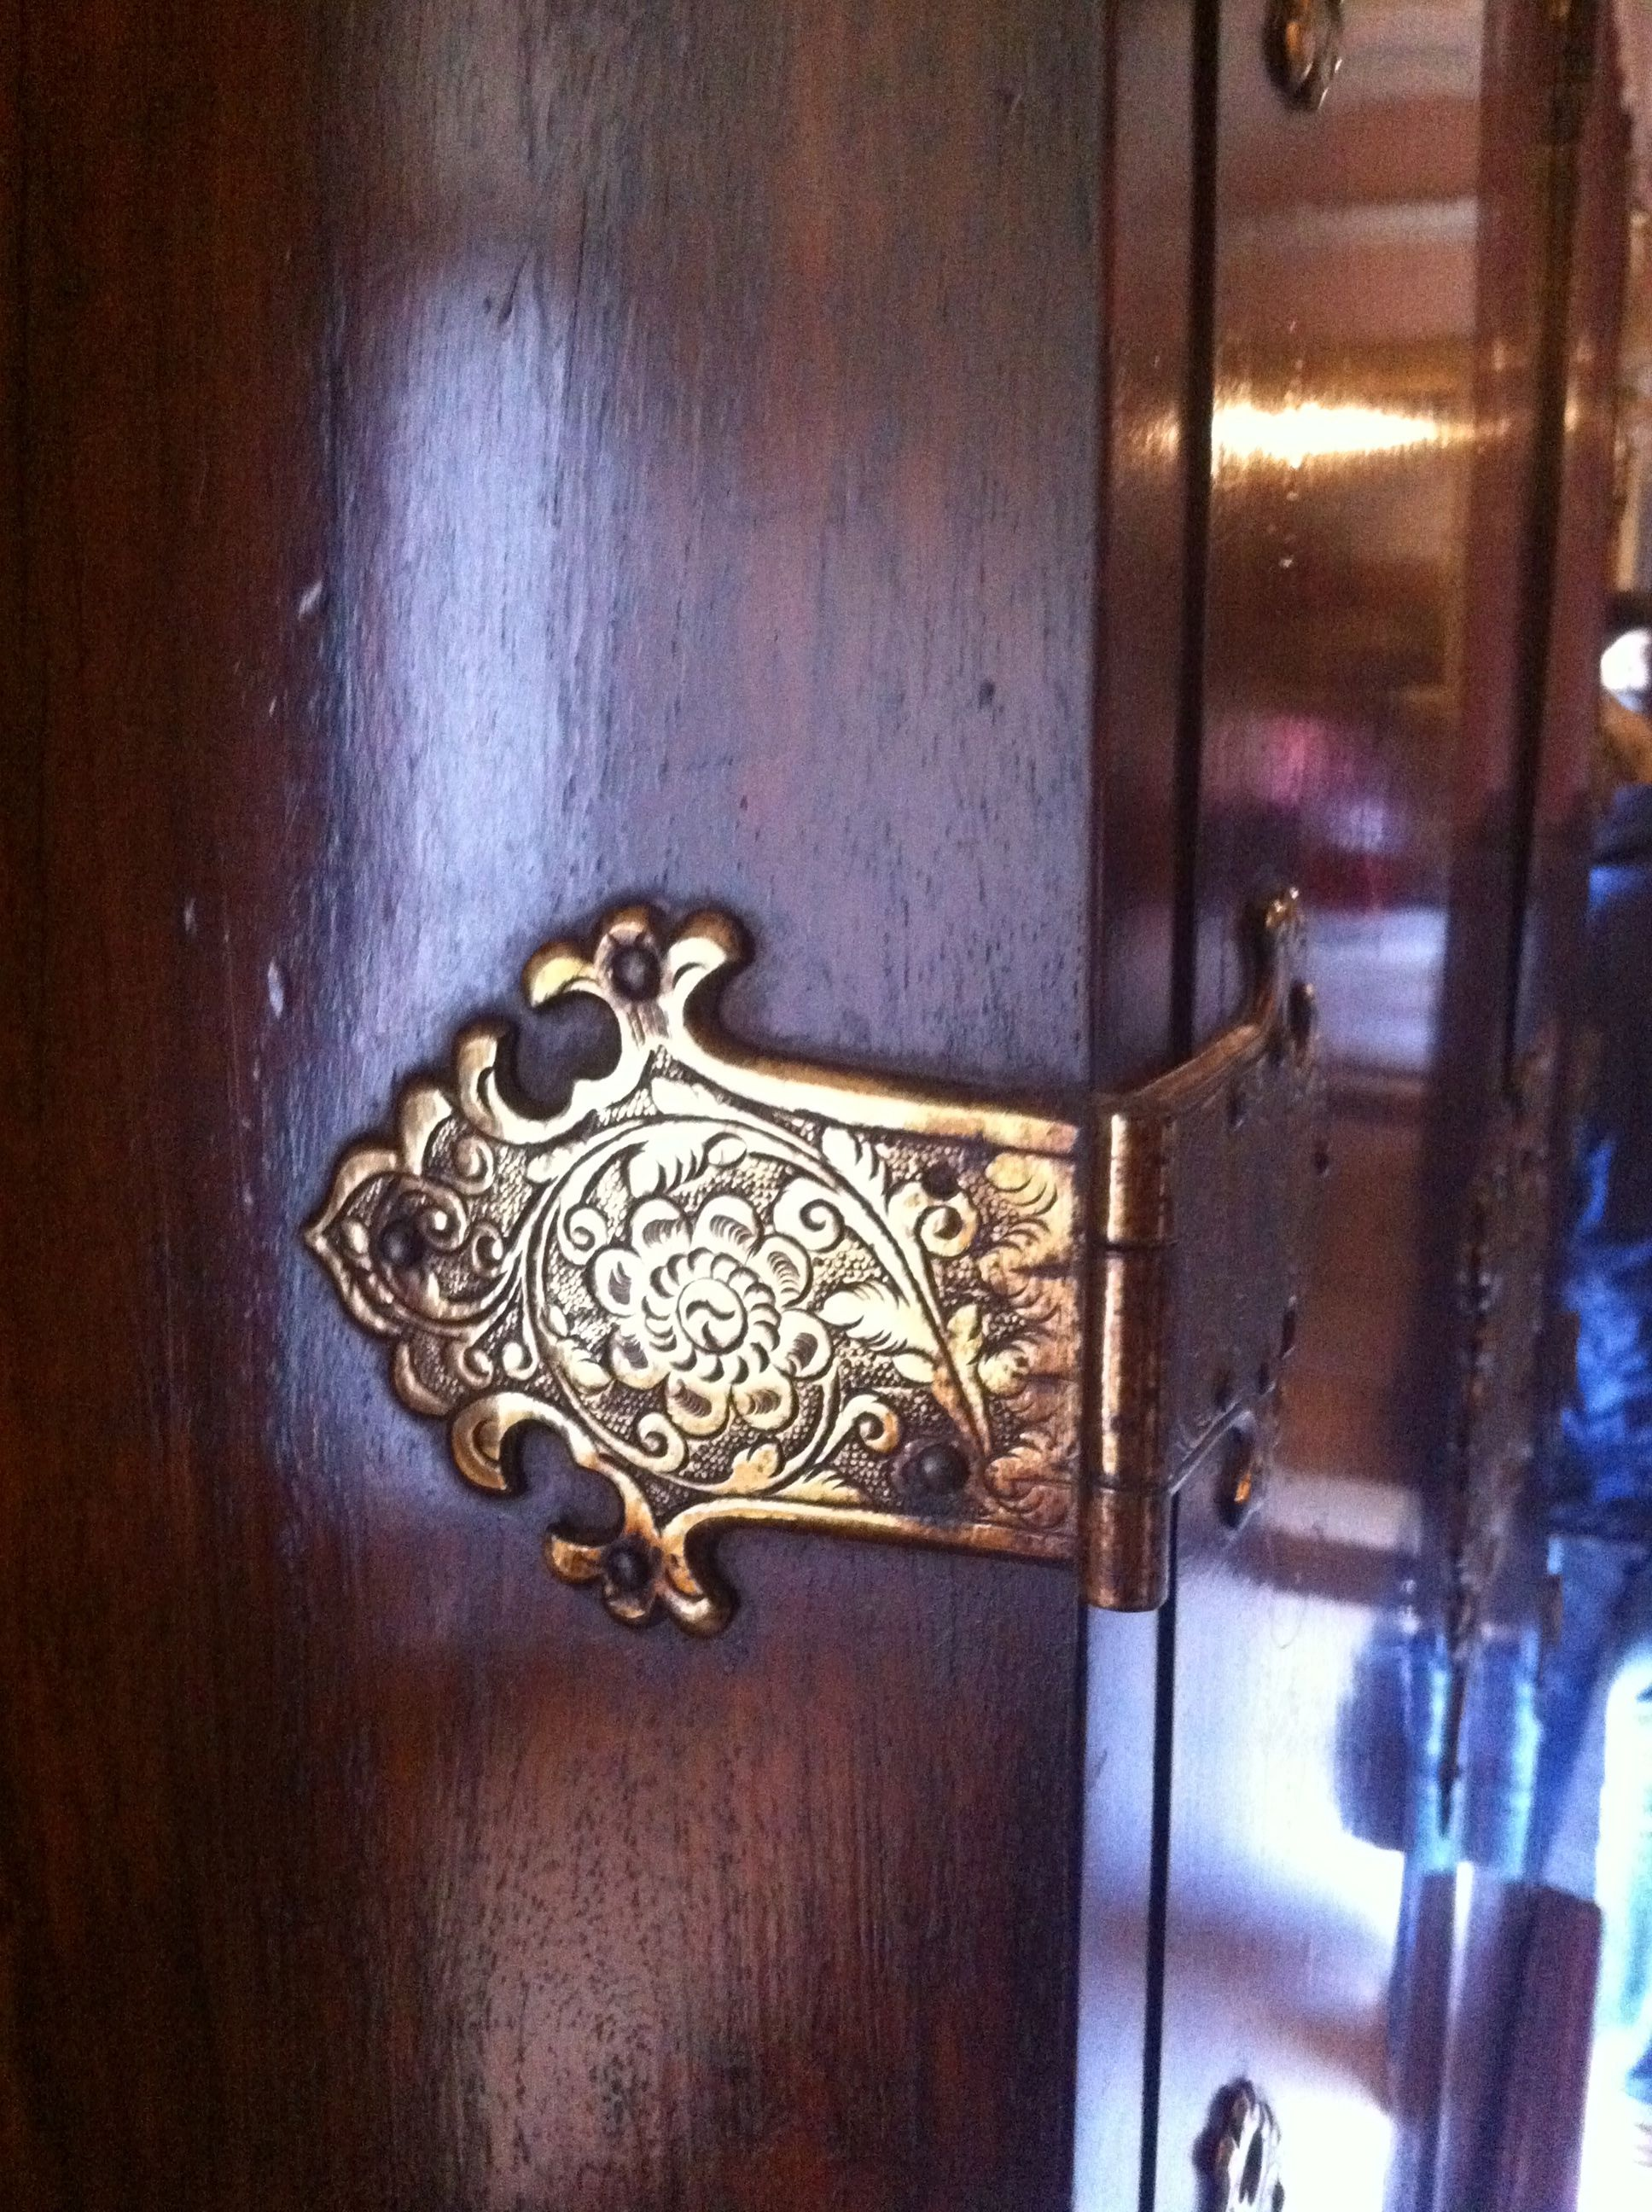 The Pattern Carving On This Door Hinge Is Very Interesting & Carving Door Hinges u0026 Love The Lion Head Door Knockers And The ... pezcame.com